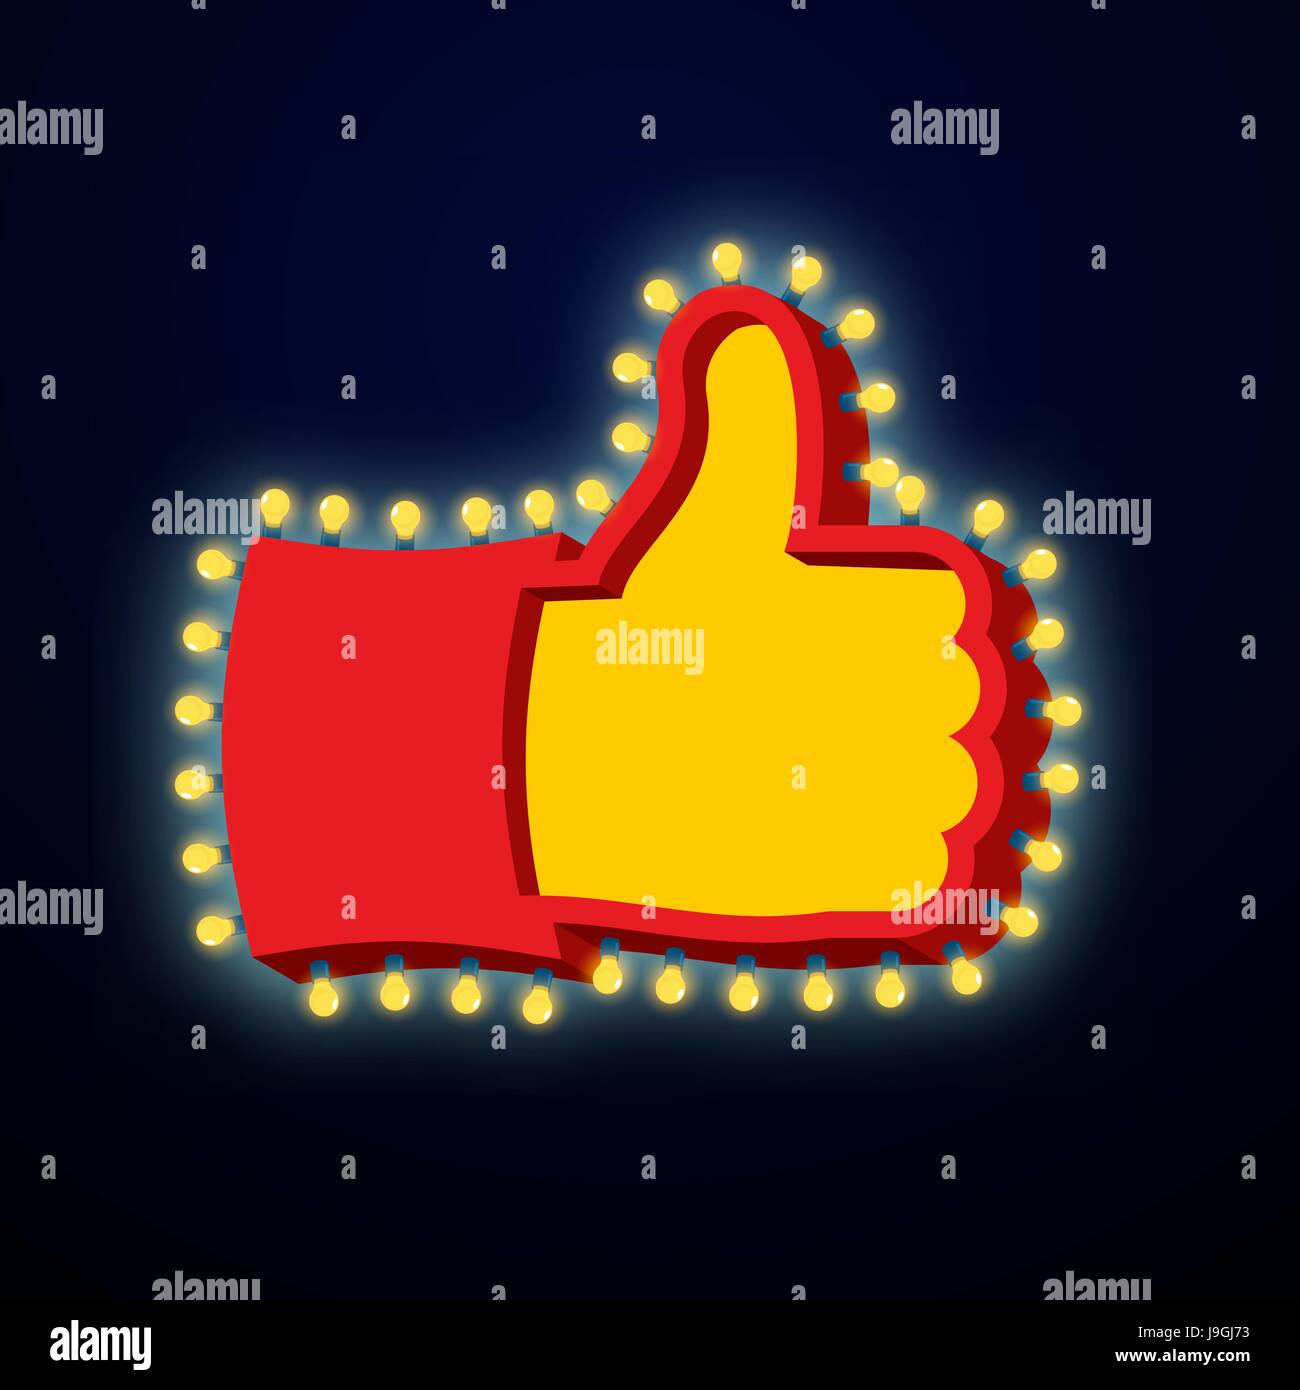 Thumb up sign with glowing lights like symbol of retro plate hand thumb up sign with glowing lights like symbol of retro plate hand with light bulb vintage direction pointer glittering lights gesture of approval buycottarizona Choice Image